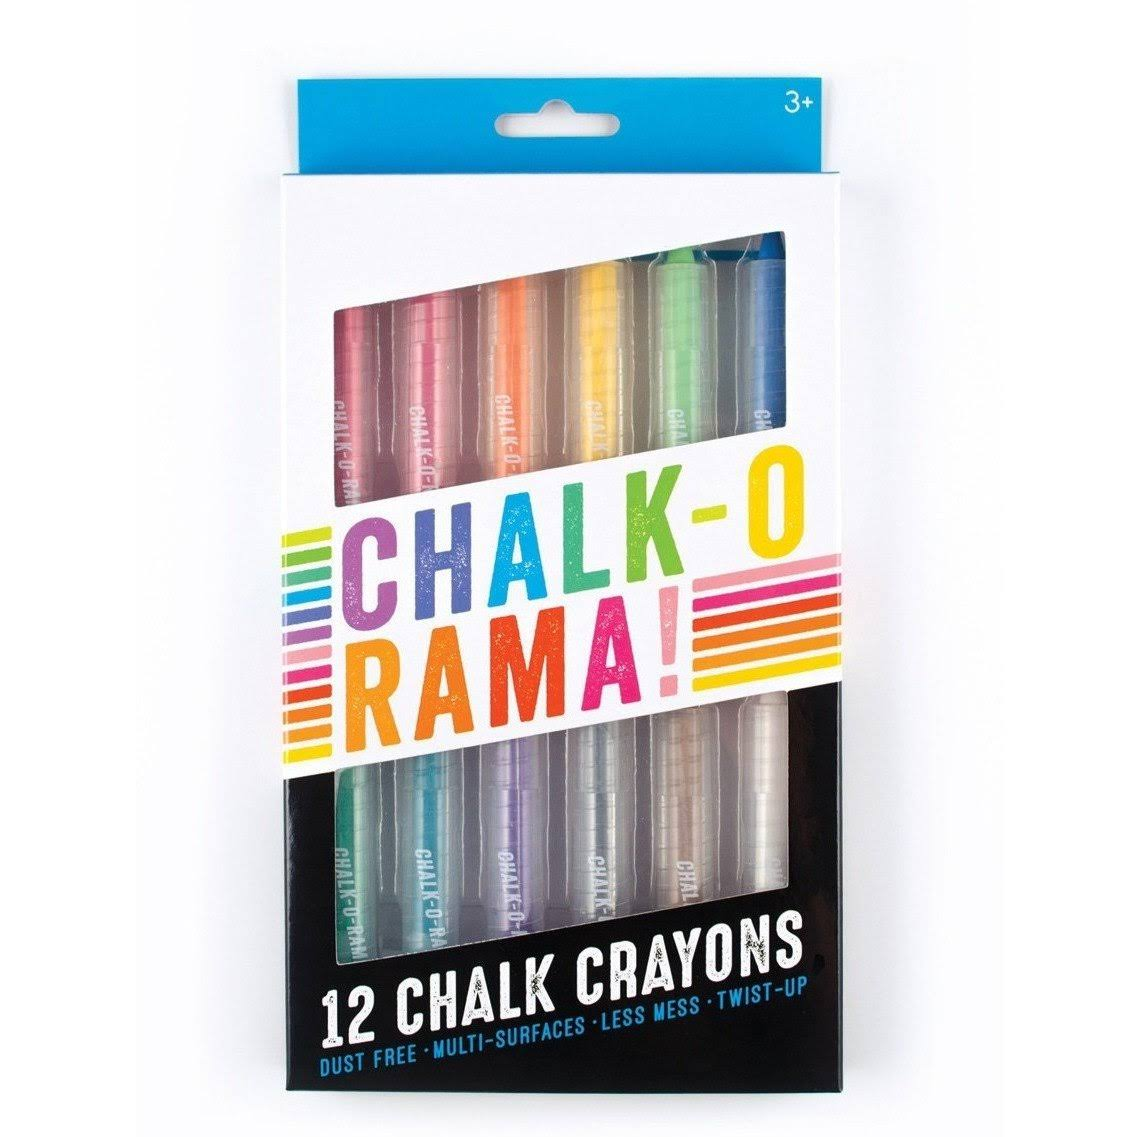 Ooly Chalk-o-rama Chalk Crayons - Set of 12